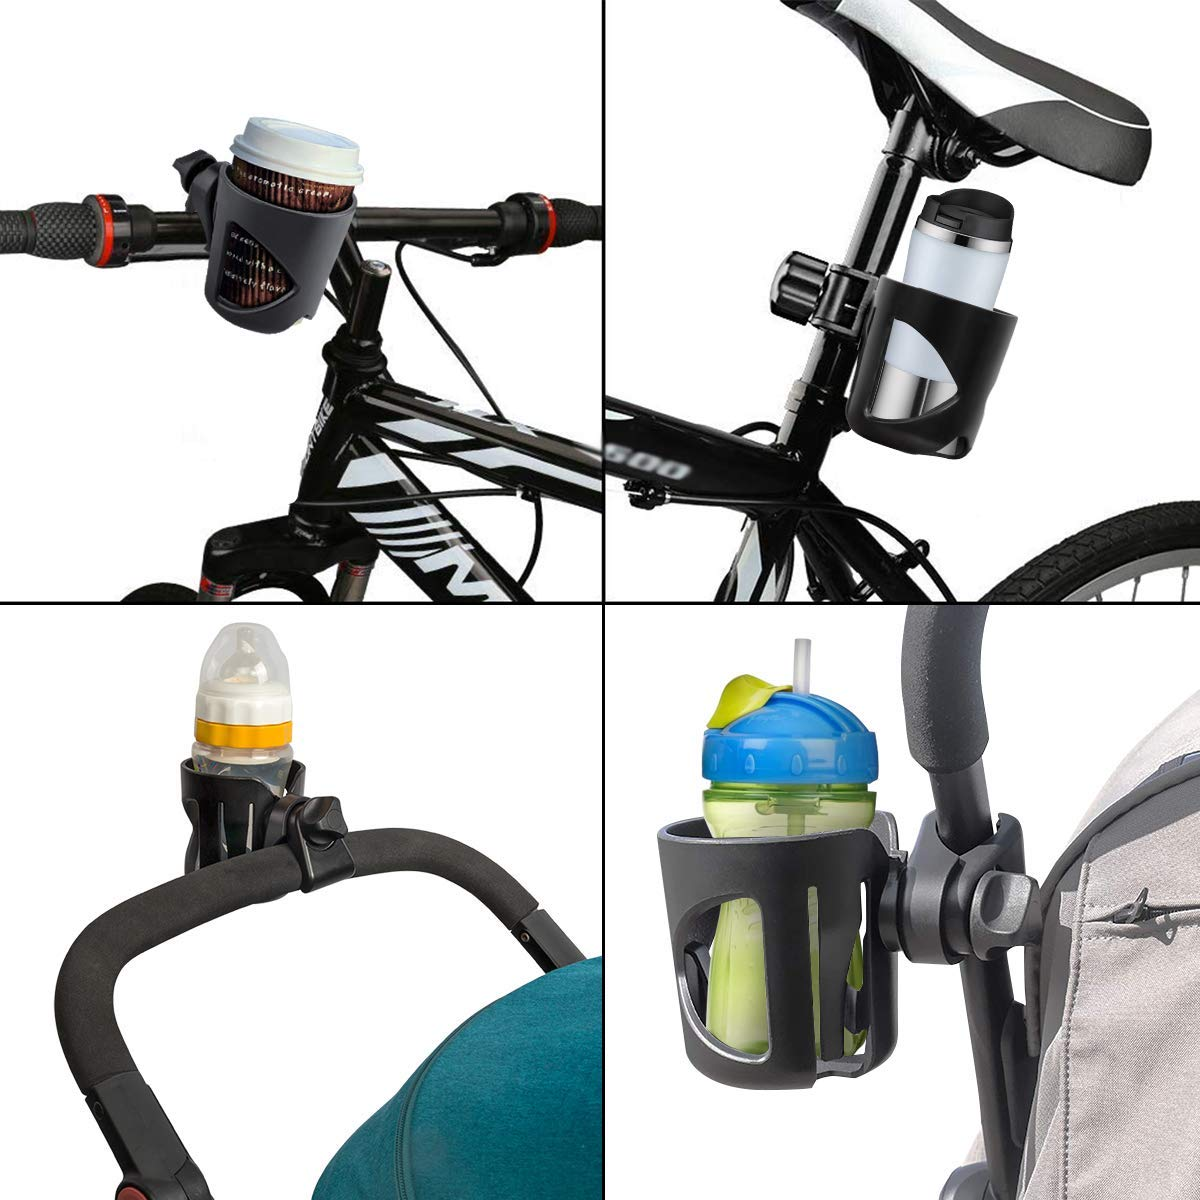 Wheelchair 360 Degrees Rotation Anti-Slip and Adjustable Universal Cup Holder for Pushchair Stroller Cup Holder with Hook Bike